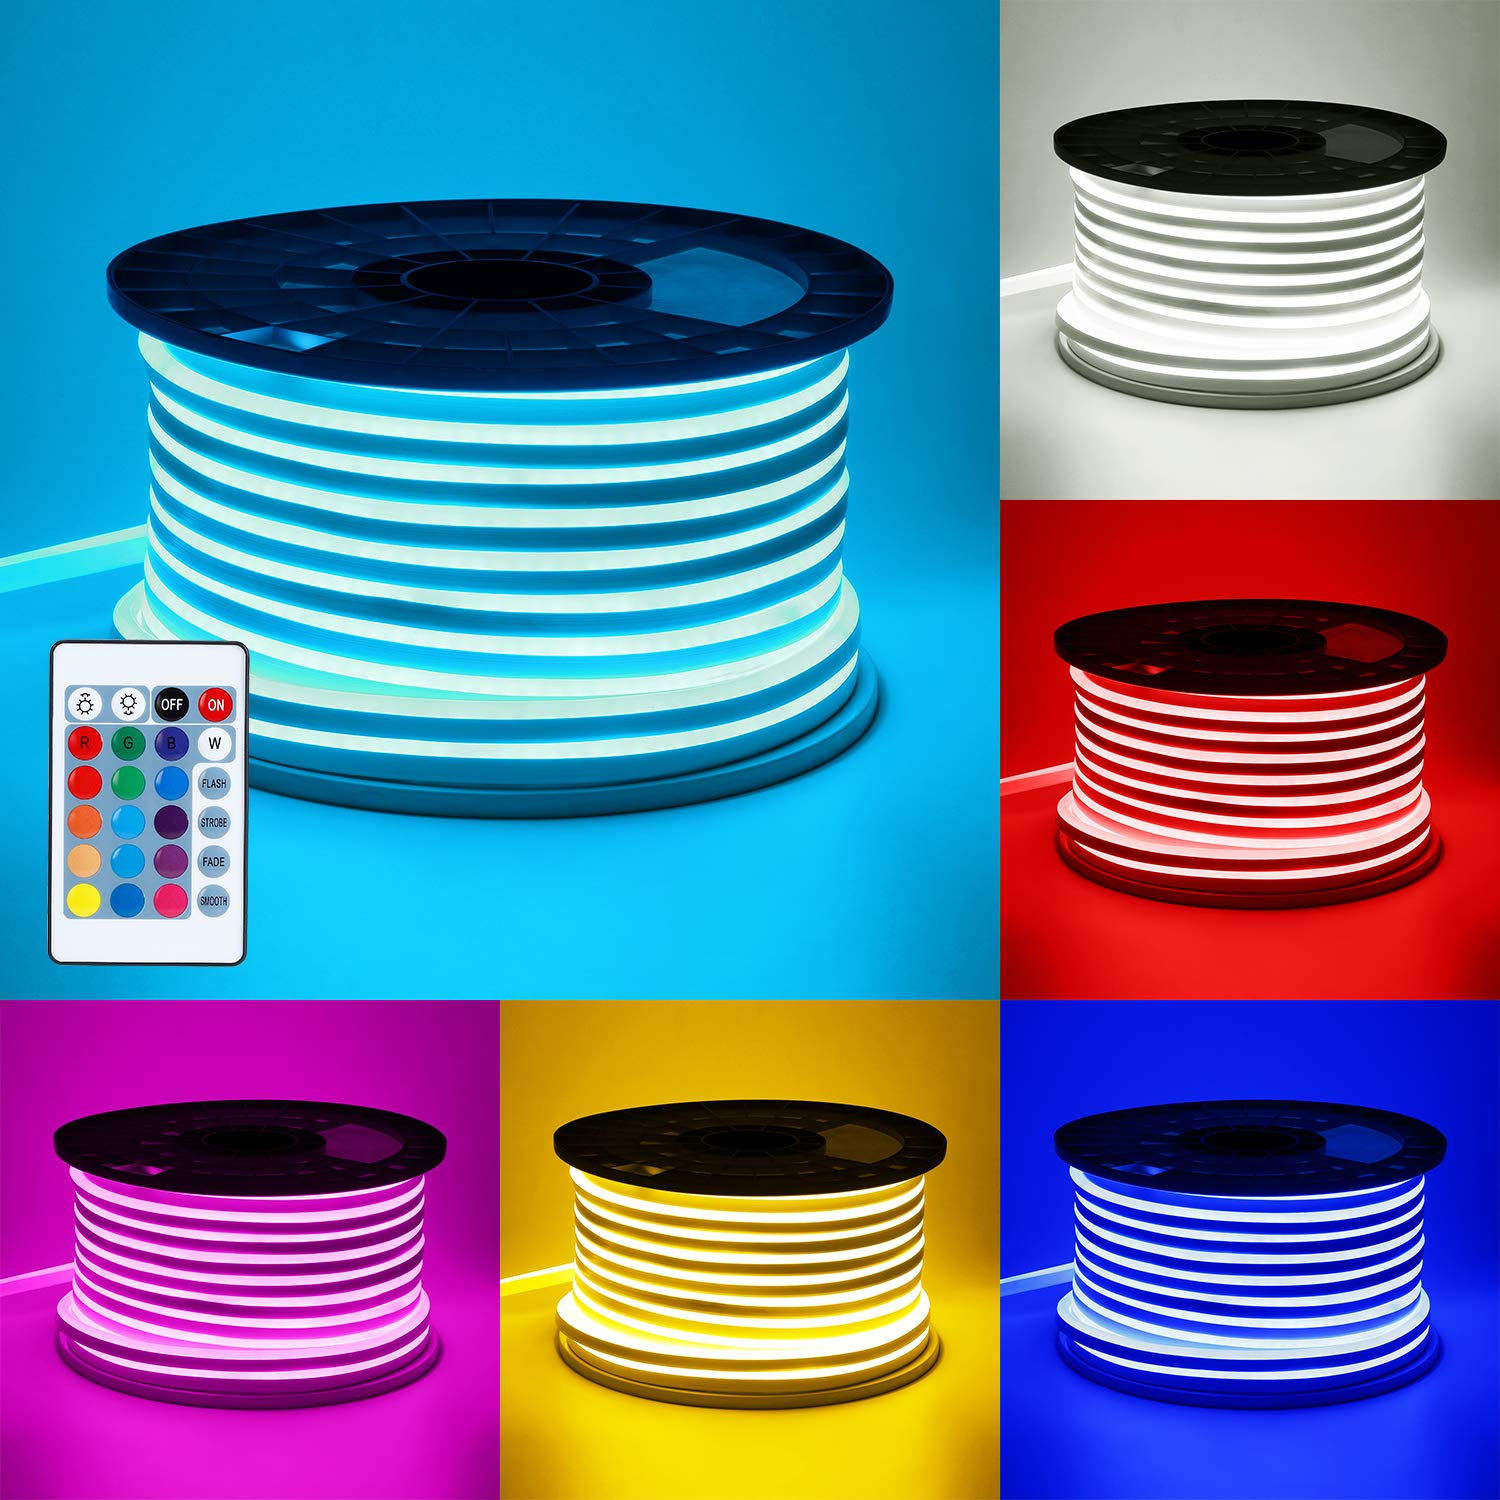 TORCHSTAR 65.6ft RGB LED Neon Rope Light, 18 LEDs/ft, Waterproof DIY Strip Light, All Necessary Accessories Included, Indoor Outdoor Decorative Lighting for Home, Patio, Garden